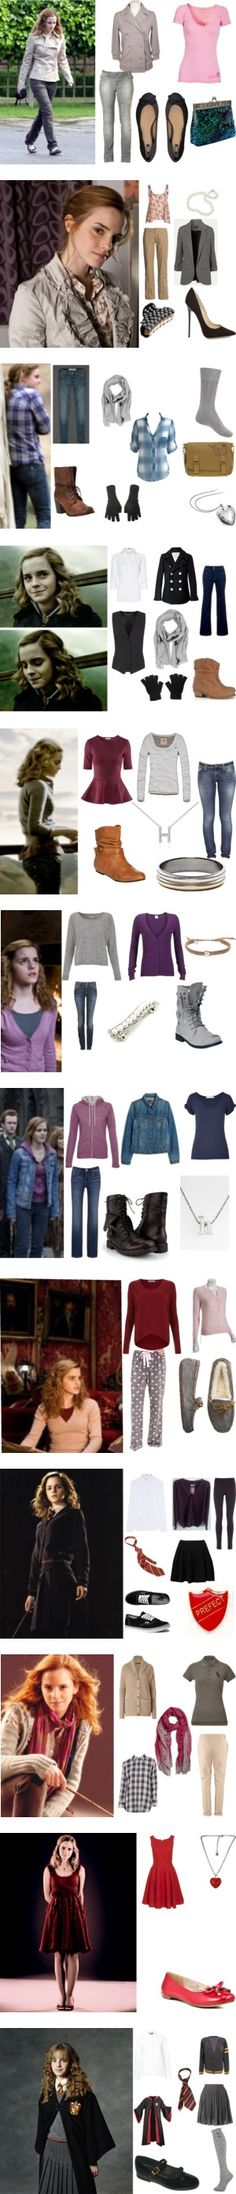 Hermione Granger Inspired Outfits by yellowheads on Polyvore featuring Marc by Marc Jacobs, True Religion, Joe Browns, ASOS, harry potter, emma watson, deathly hallows, hermione granger, Emma Watson and Topshop